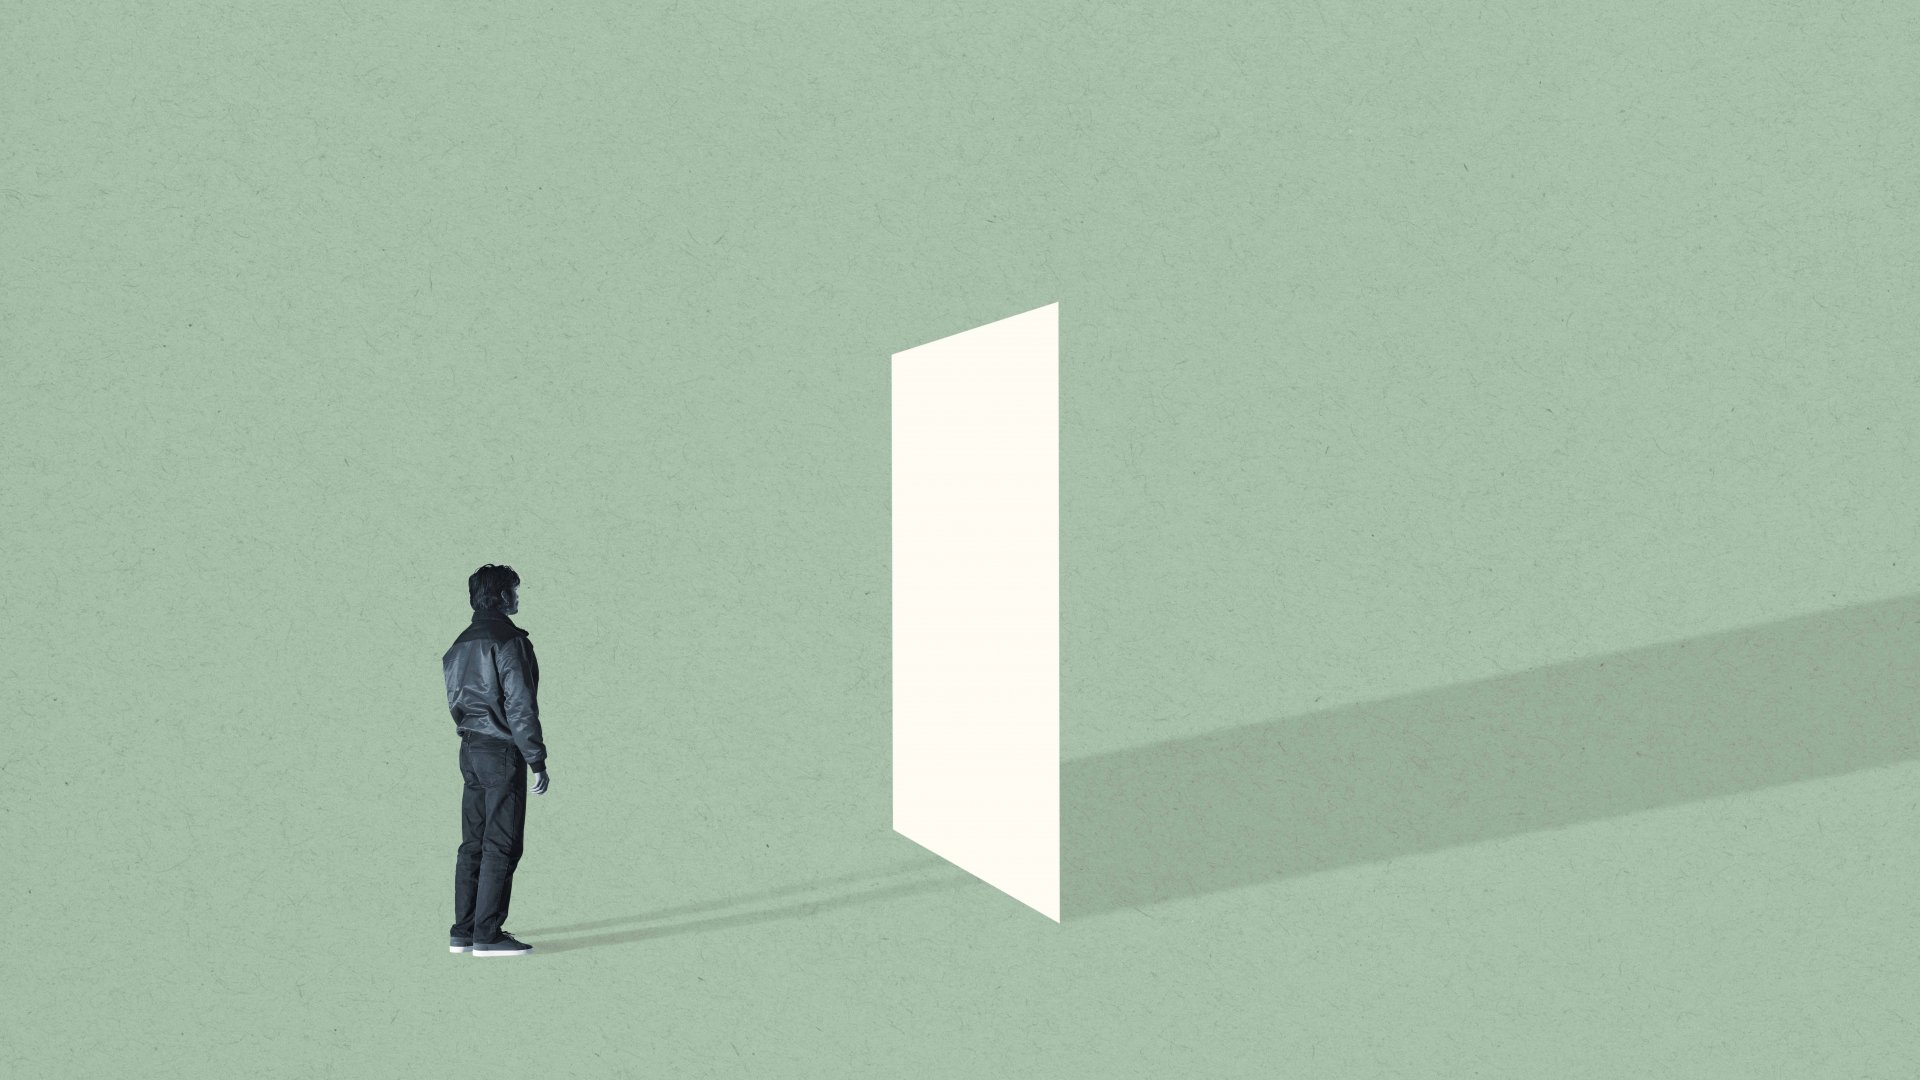 For Entrepreneurs, This Year Will Be Full of Unknowns--and Opportunities